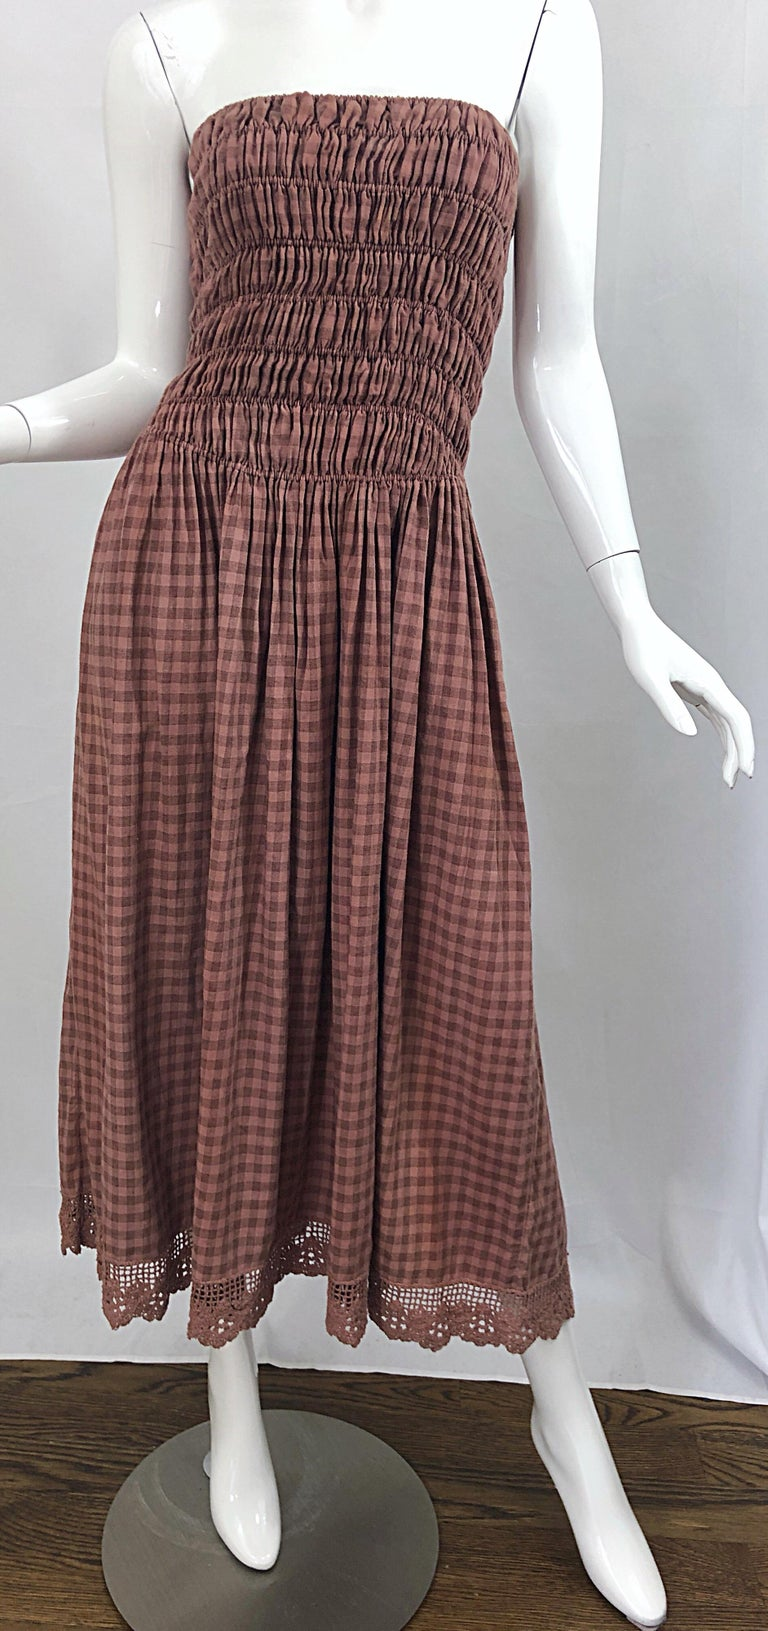 1970s Geoffrey Beene Dusty Rose Pink + Brown Crochet Strapless Ombre Midi Dress For Sale 5